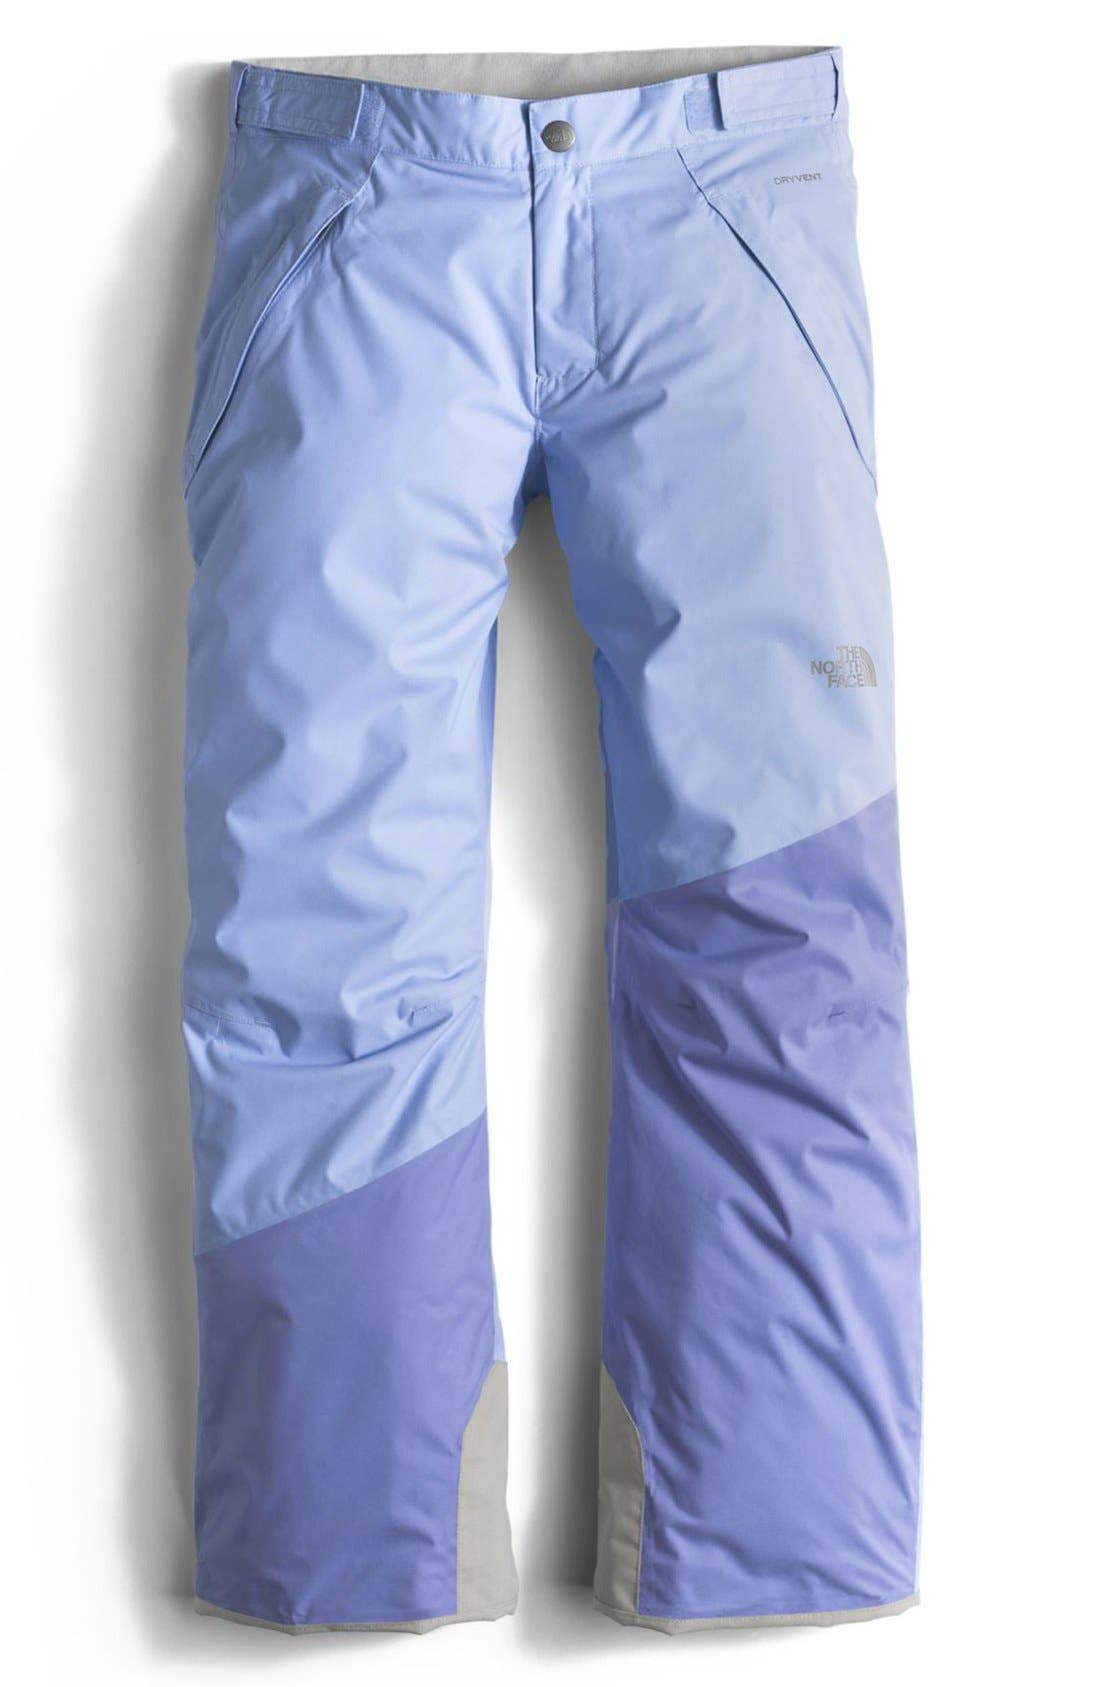 Alternate Image 1 Selected - The North Face 'Freedom' Insulated Pants (Little Girls & Big Girls)